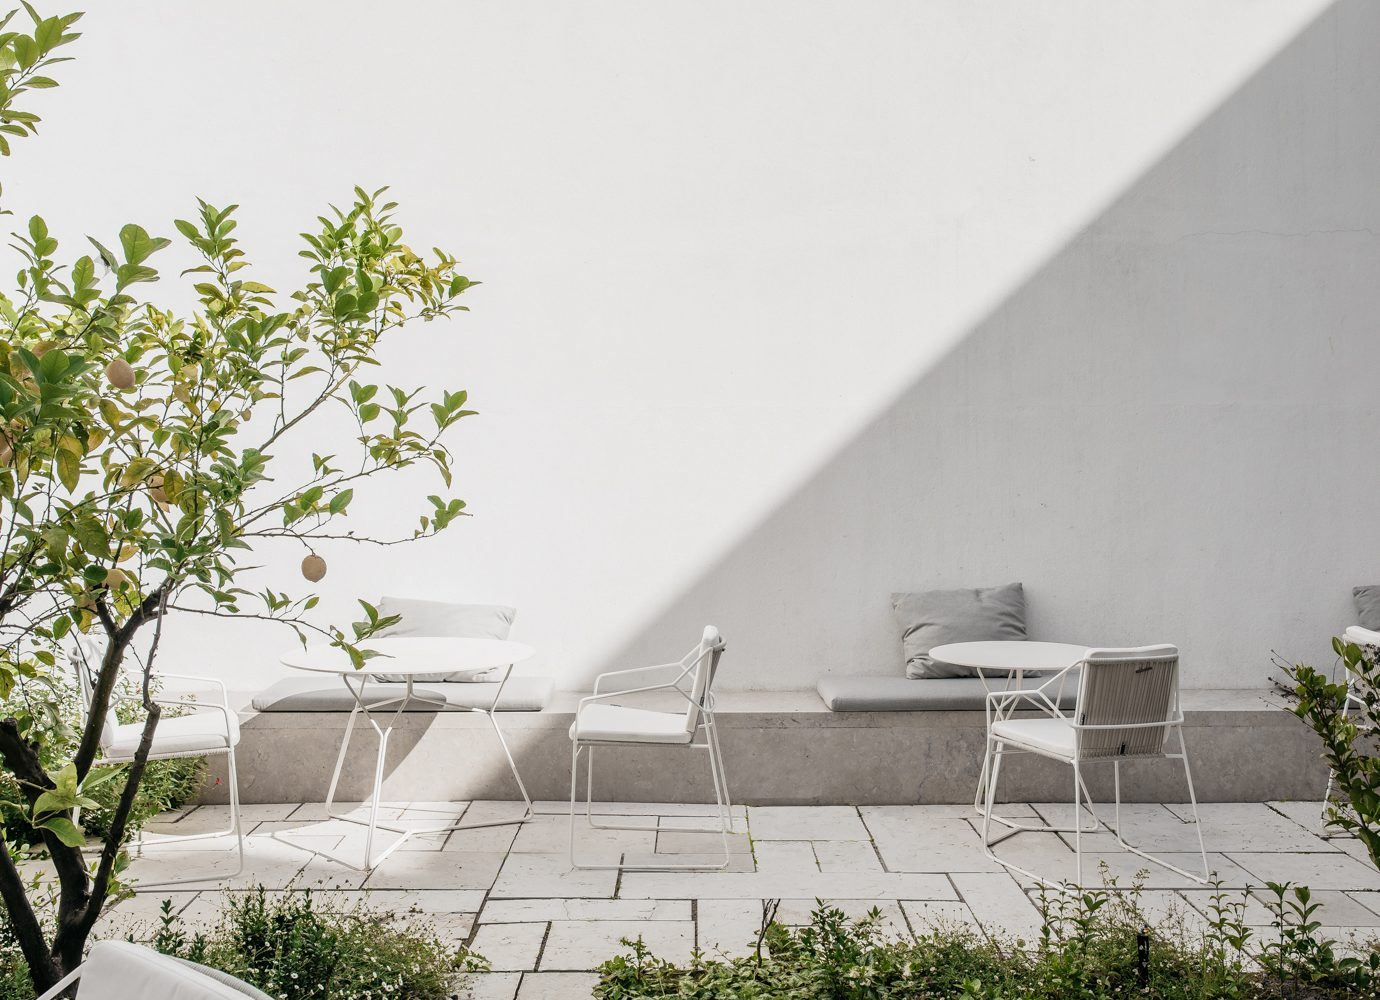 Outdoor seating on the patio with a hard shadow taking over half of the image